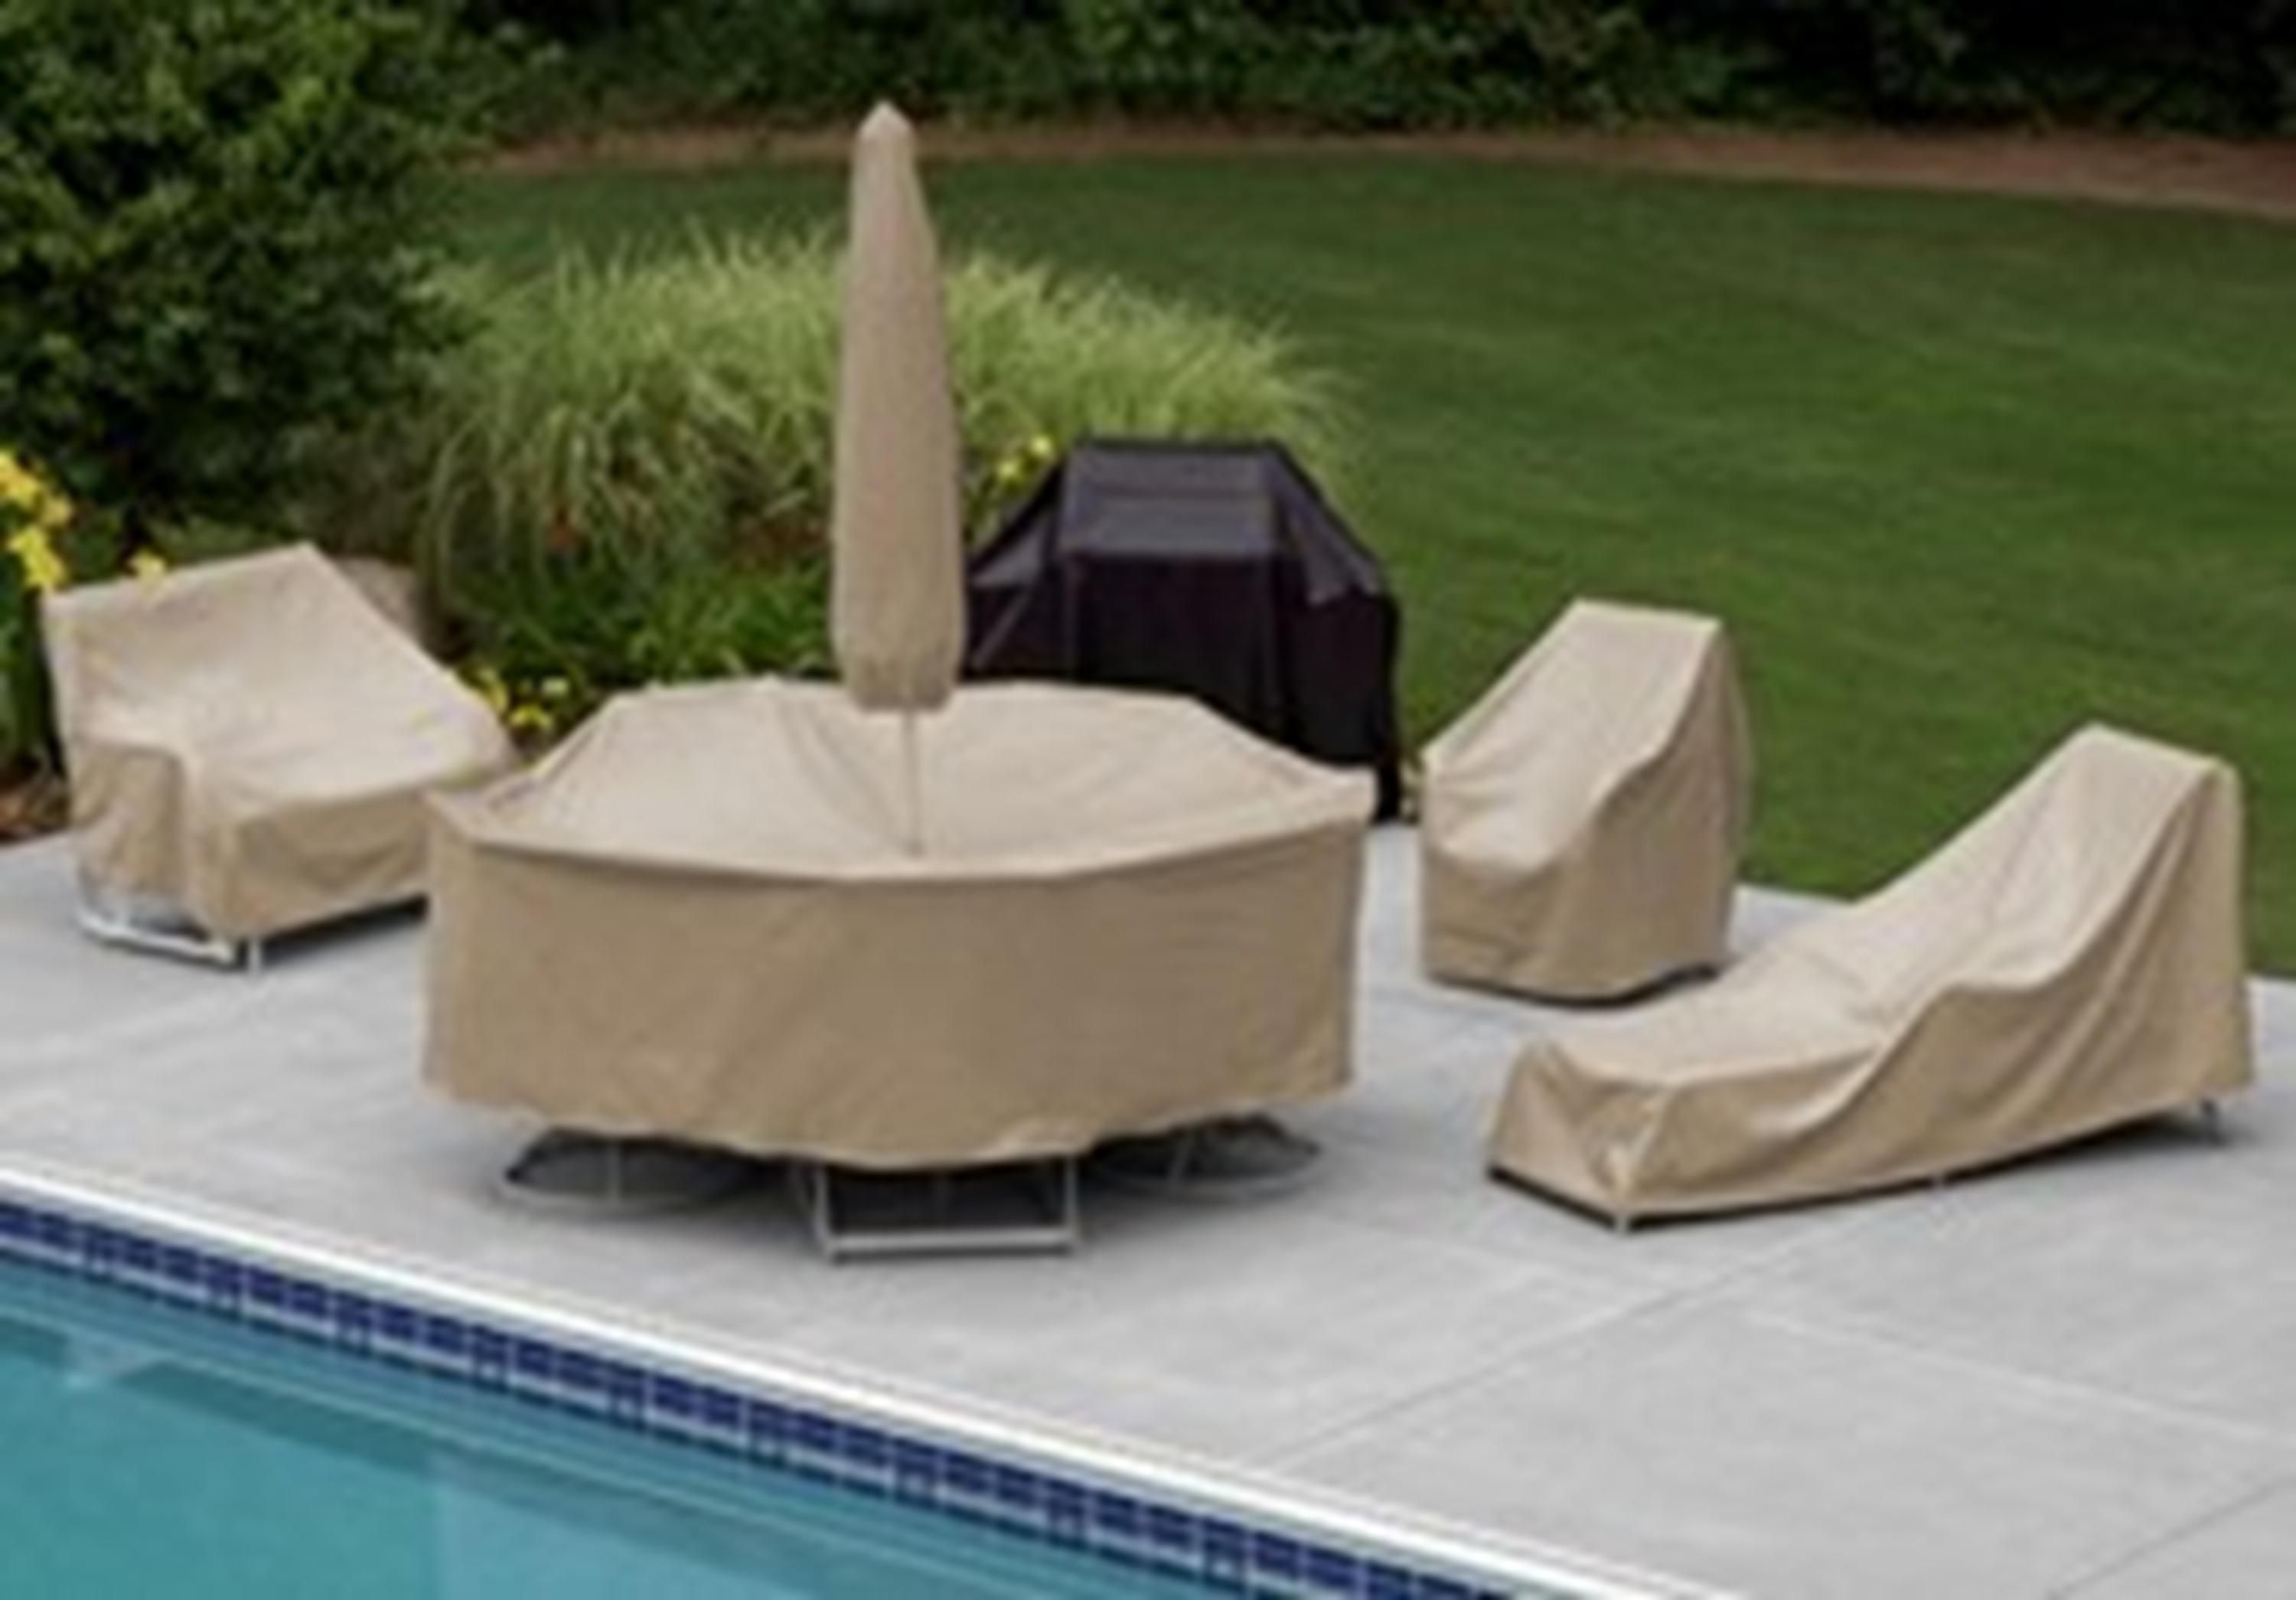 Cheap Outdoor Patio Furniture Covers Outdoor Patio Furniture Cover Outdoor Furniture Covers Patio Furniture Covers